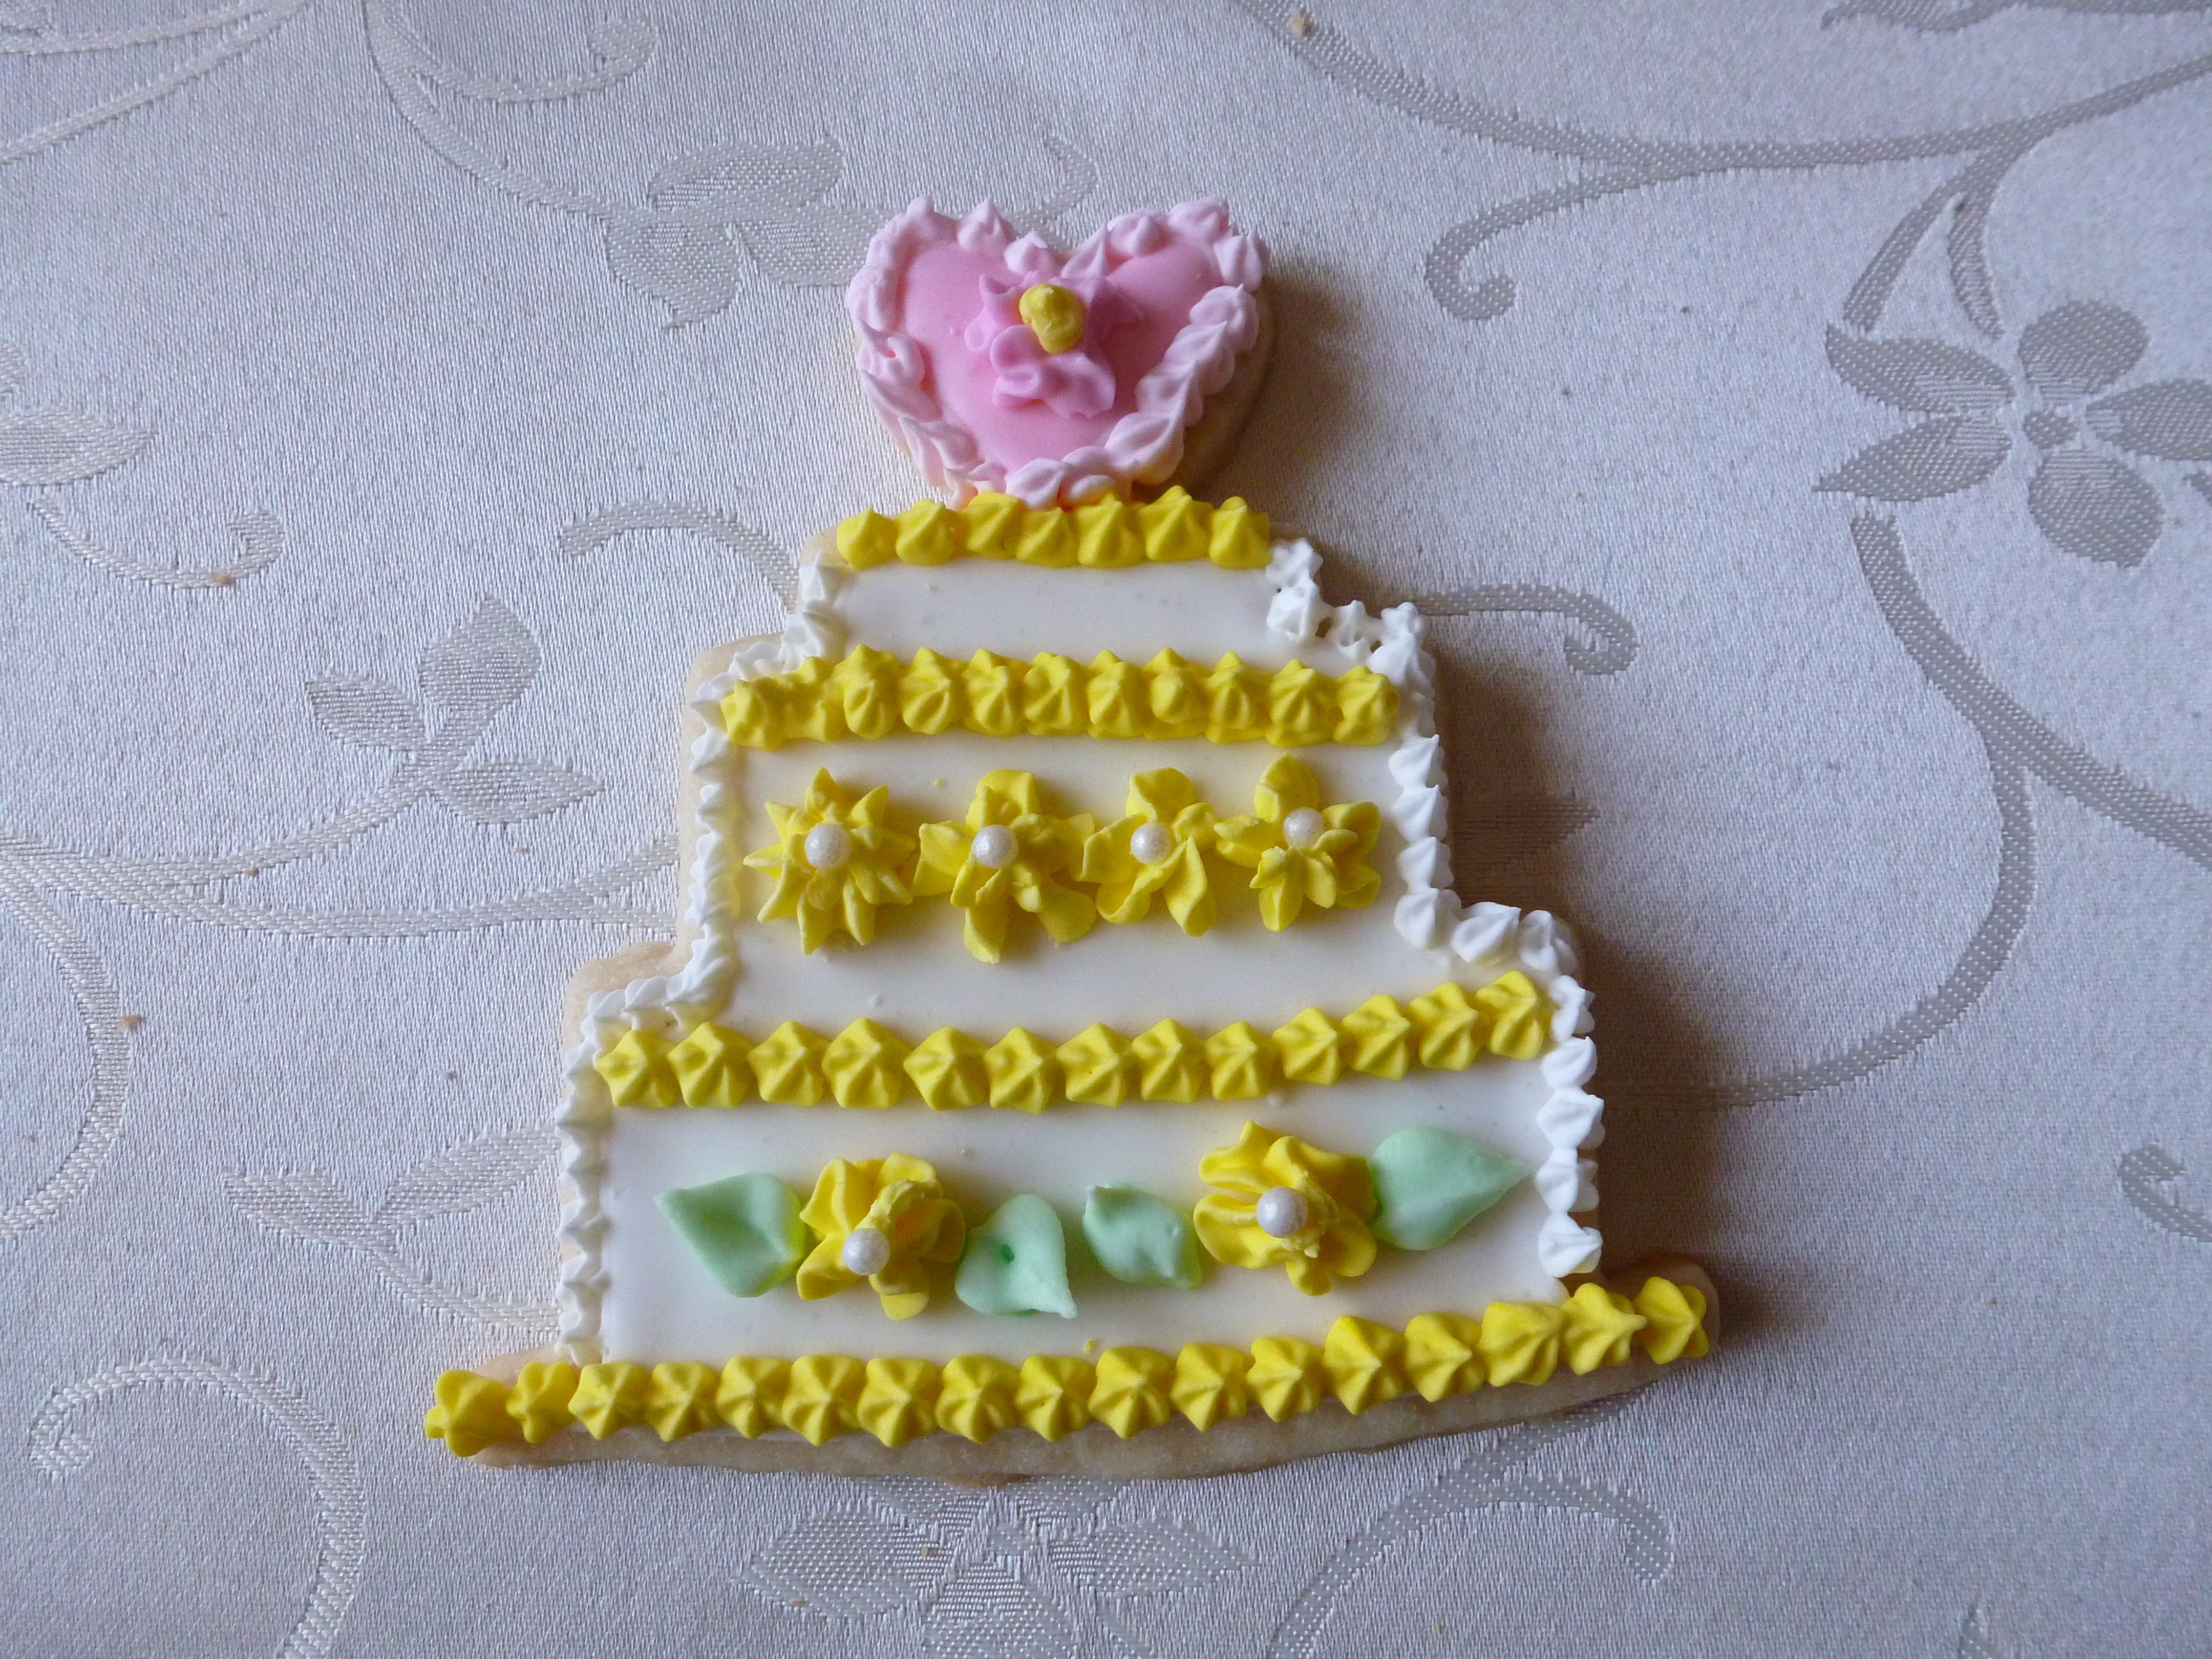 Wedding cake shaped hand-decorated sugar cookie in yellow | 4"|4320|3240|?|en|2|99a9c7207a1ee1714b53ad9416b4e38e|False|UNLIKELY|0.3848755955696106